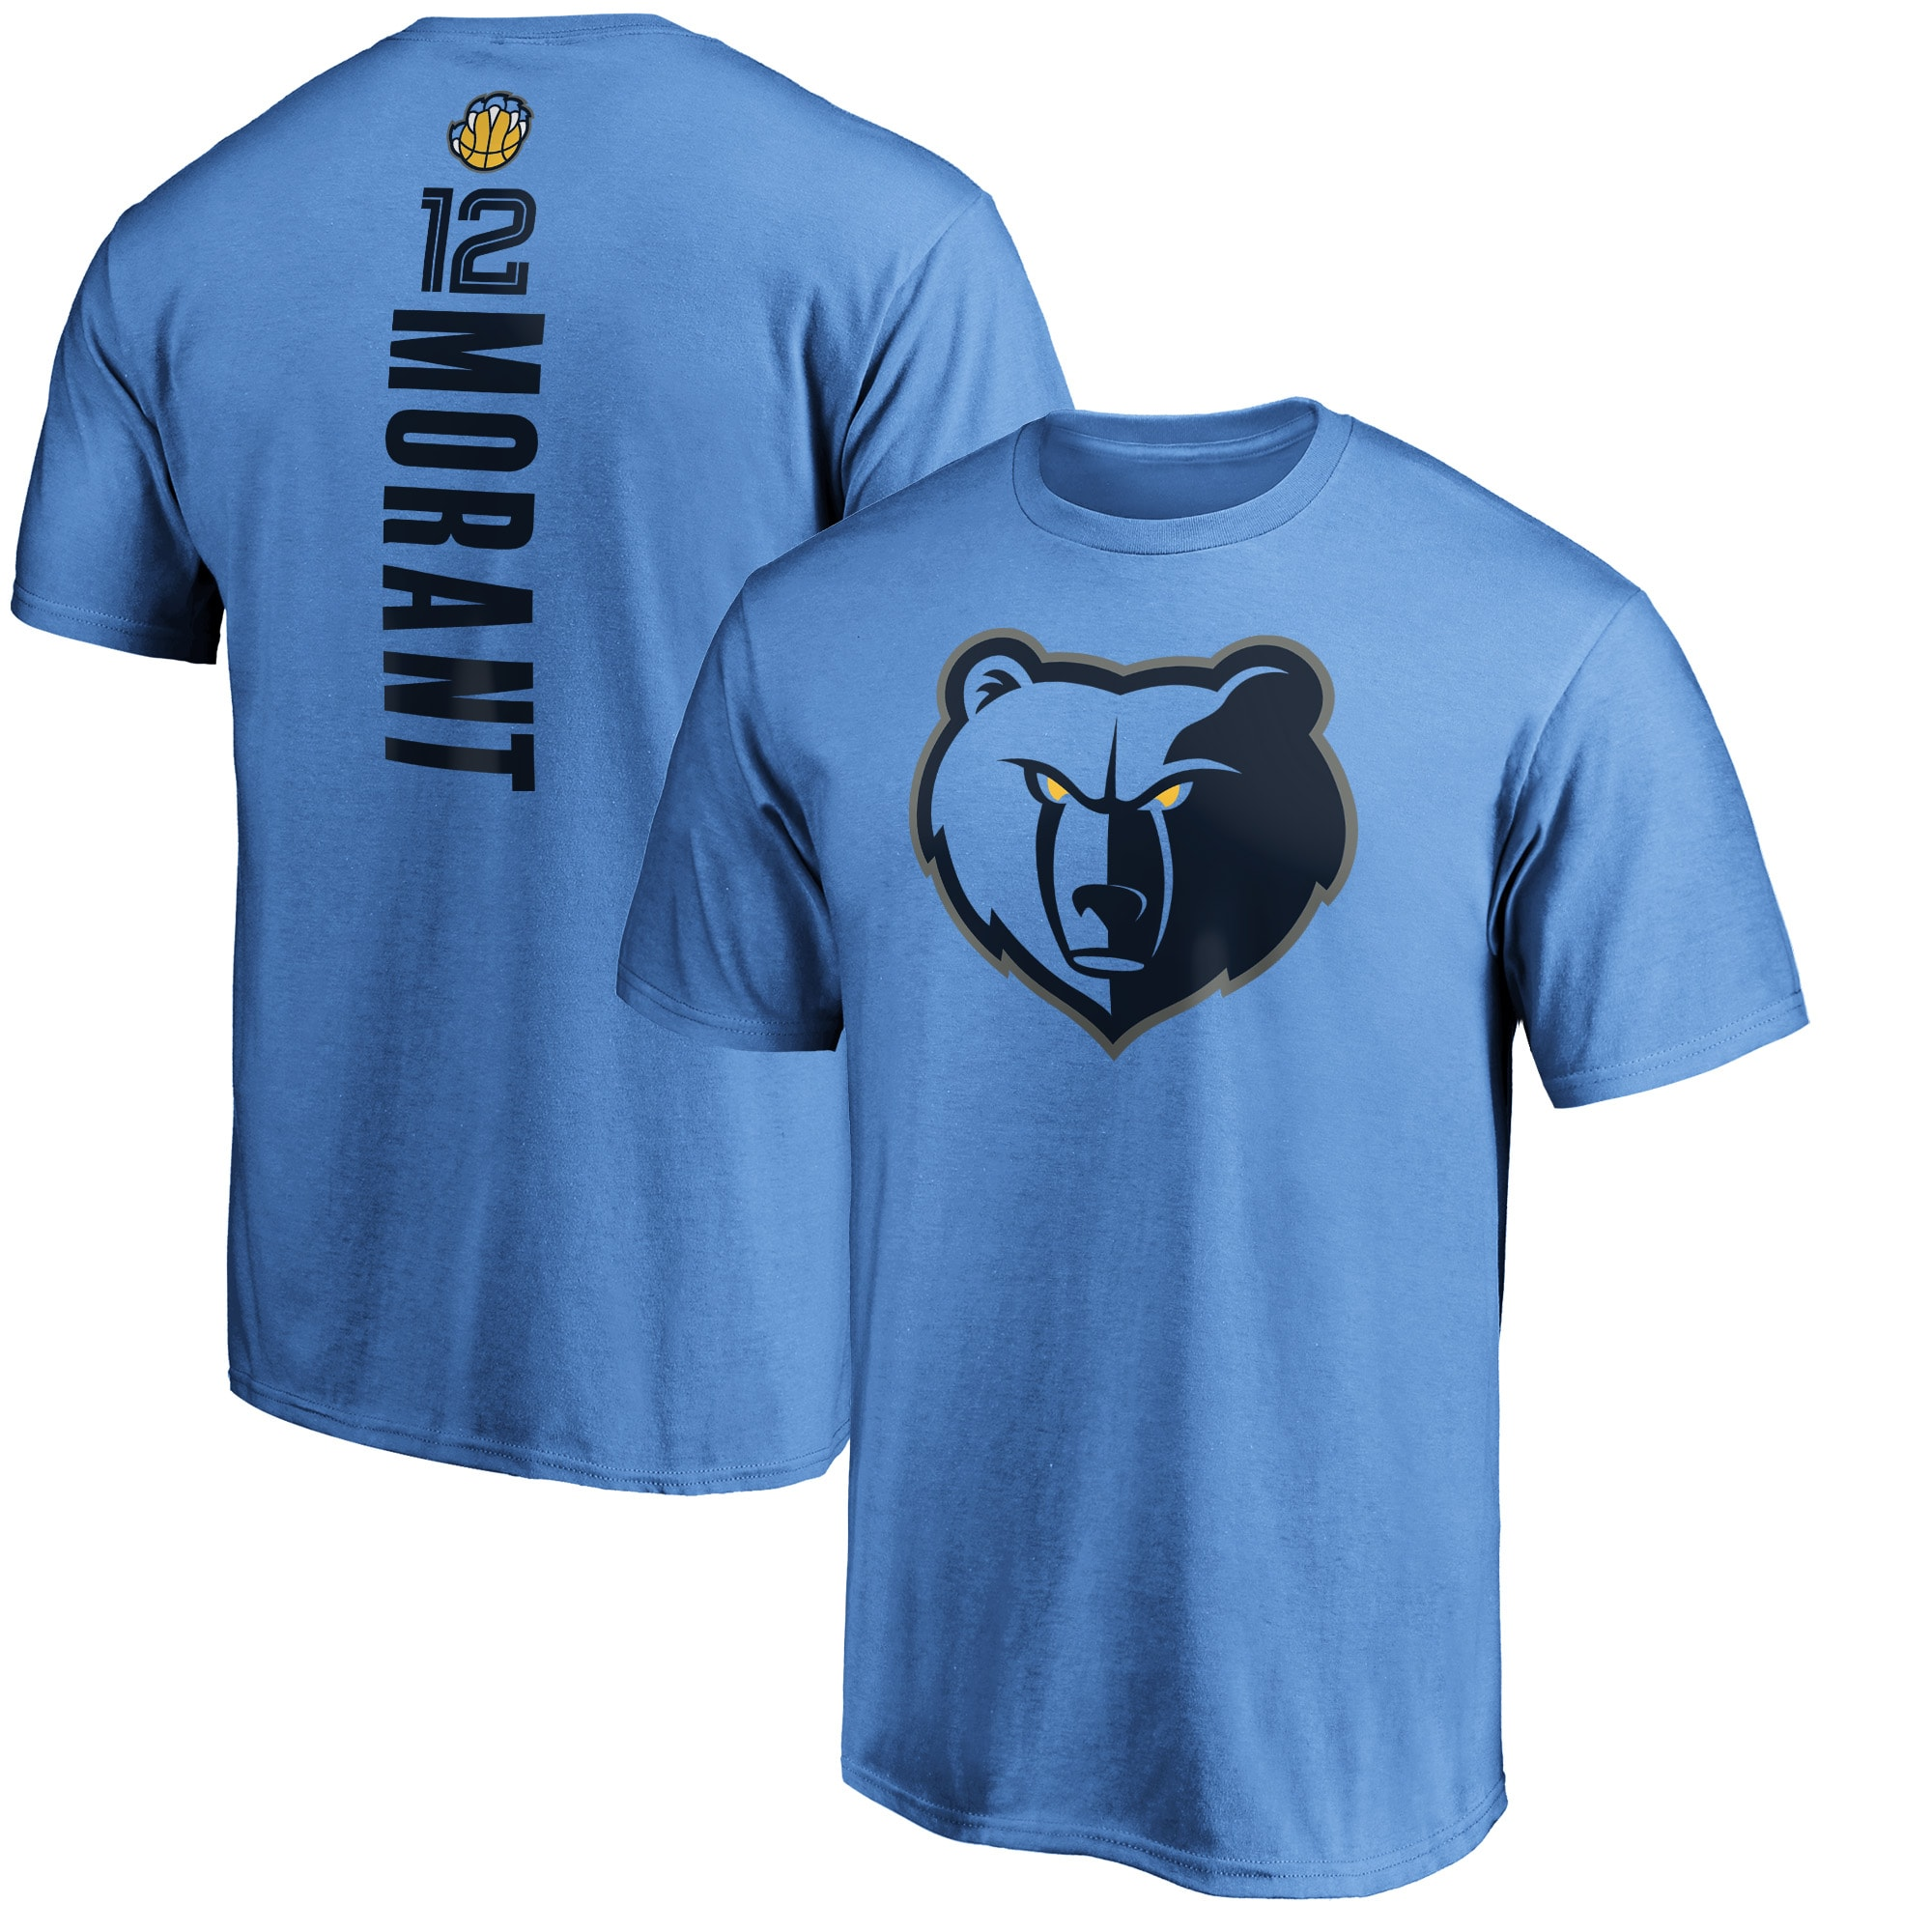 Ja Morant Memphis Grizzlies Fanatics Branded Playmaker Name & Number Team T-Shirt - Light Blue